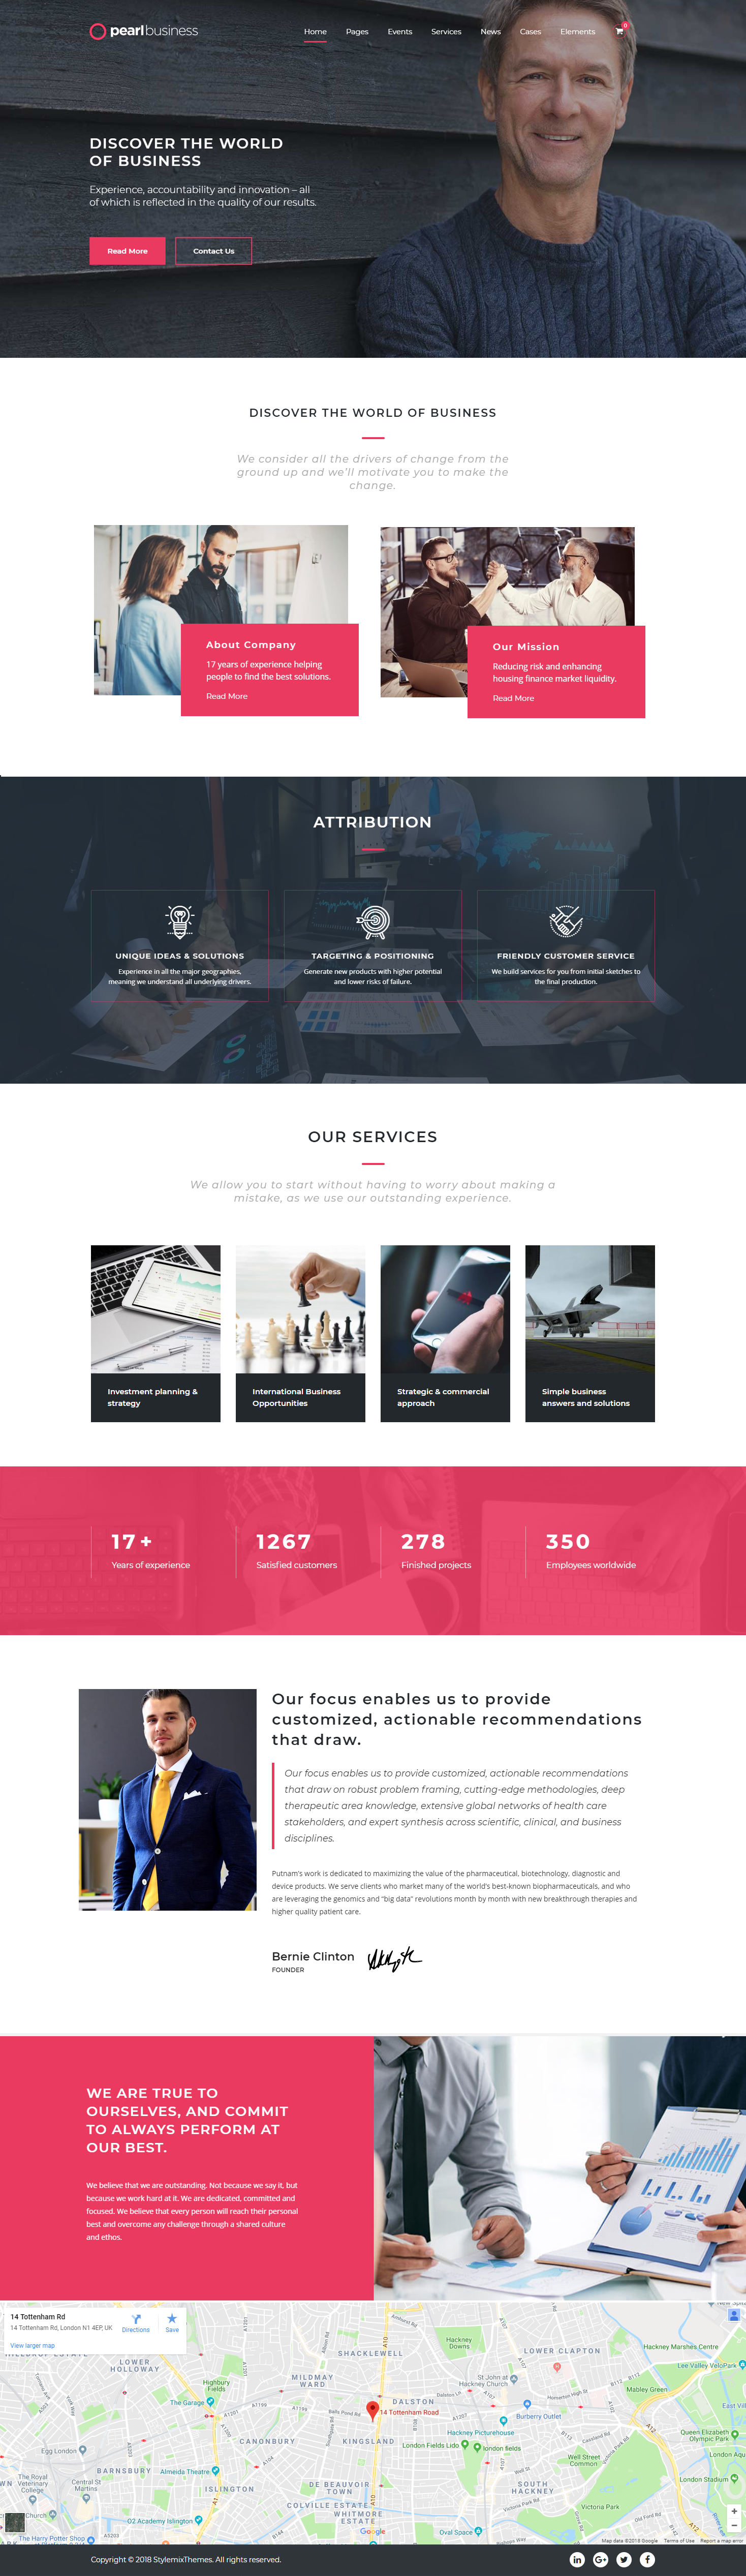 Nicepage Is A New Powerful Web Design Tool And An Easy To Use Builder For Your Websites Blogs And Themes Des Web Design Tools Business Web Design Web Design